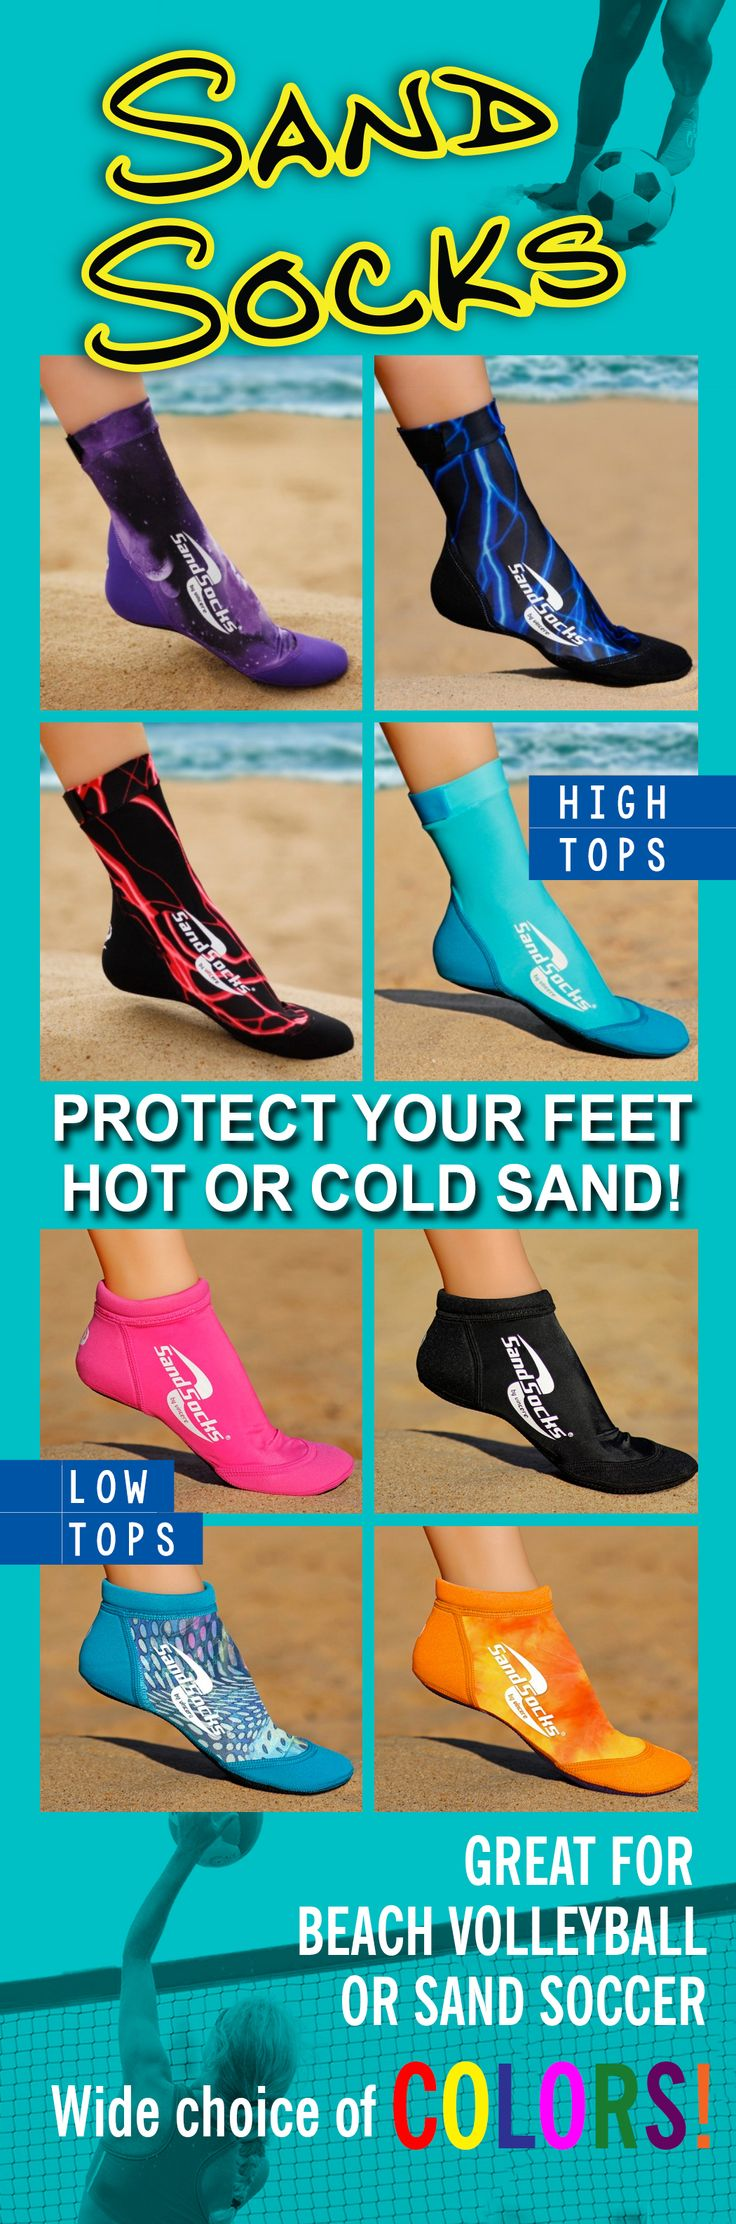 Be game ready, jump higher, move faster and protect your feet. Enjoy a barefoot feel with breathable, light, quick drying Sand Socks. Perfect for sand sports or the beach.